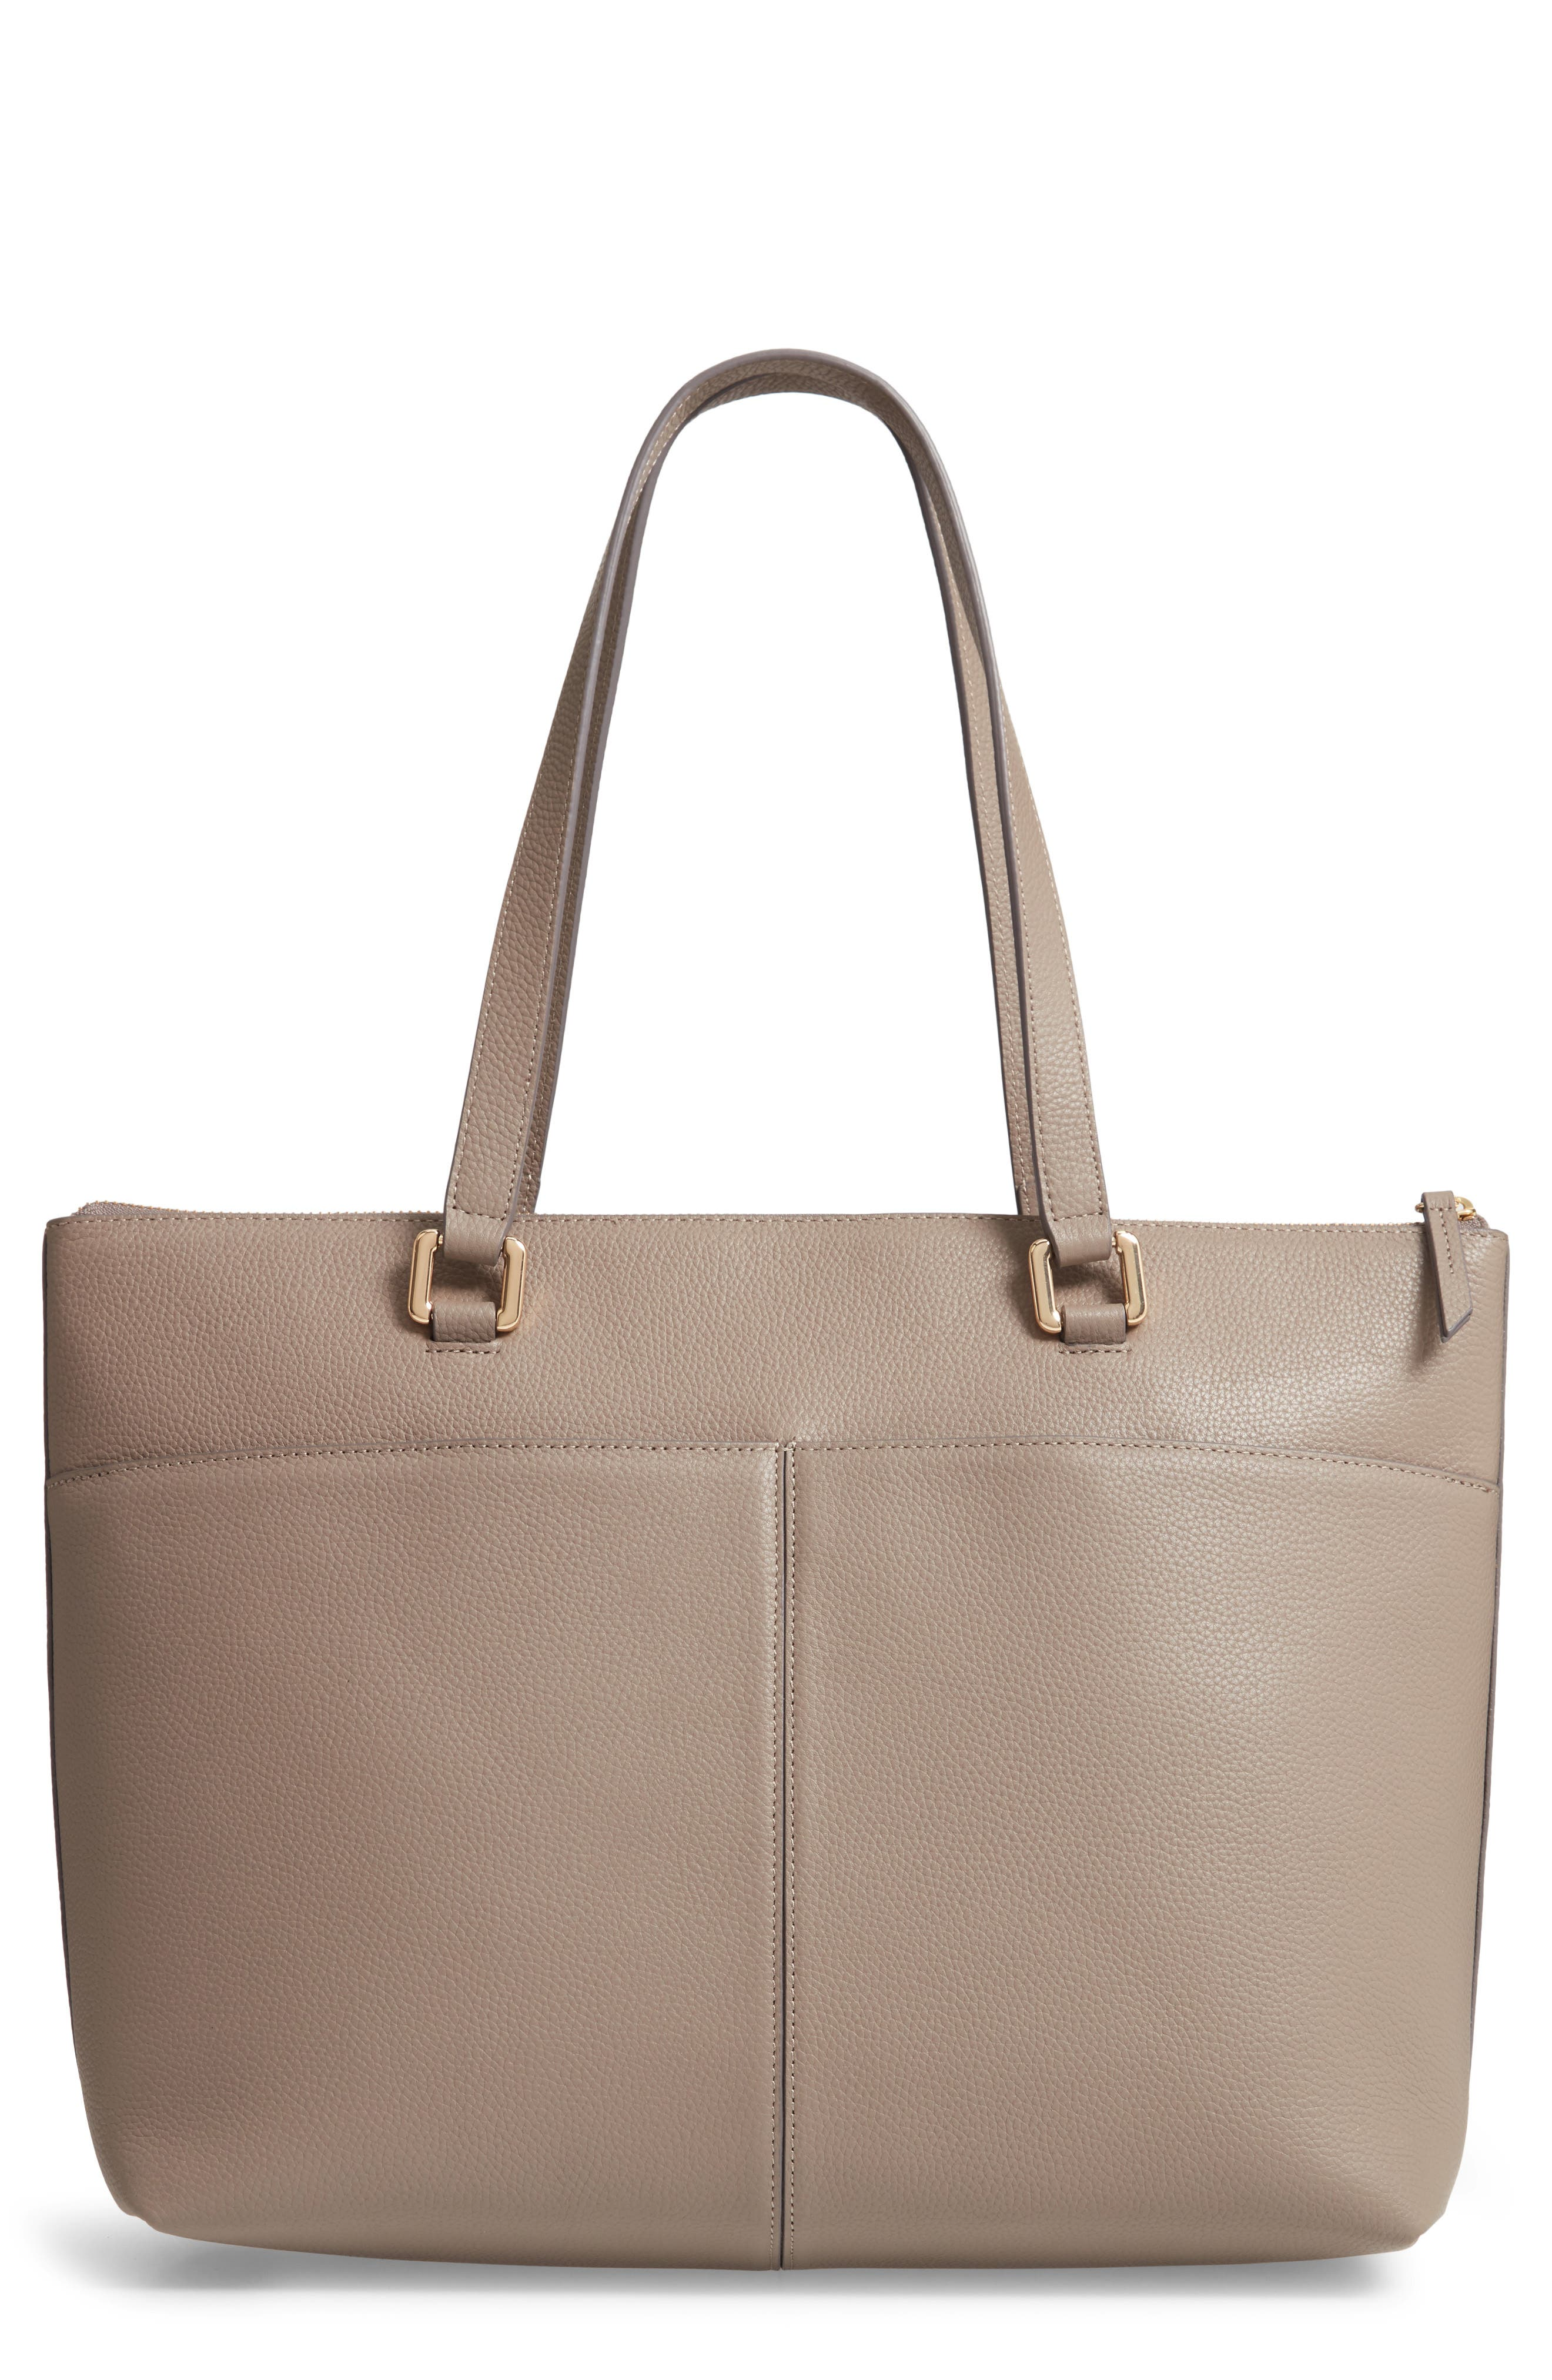 NORDSTROM Lexa Pebbled Leather Tote, Main, color, GREY TAUPE